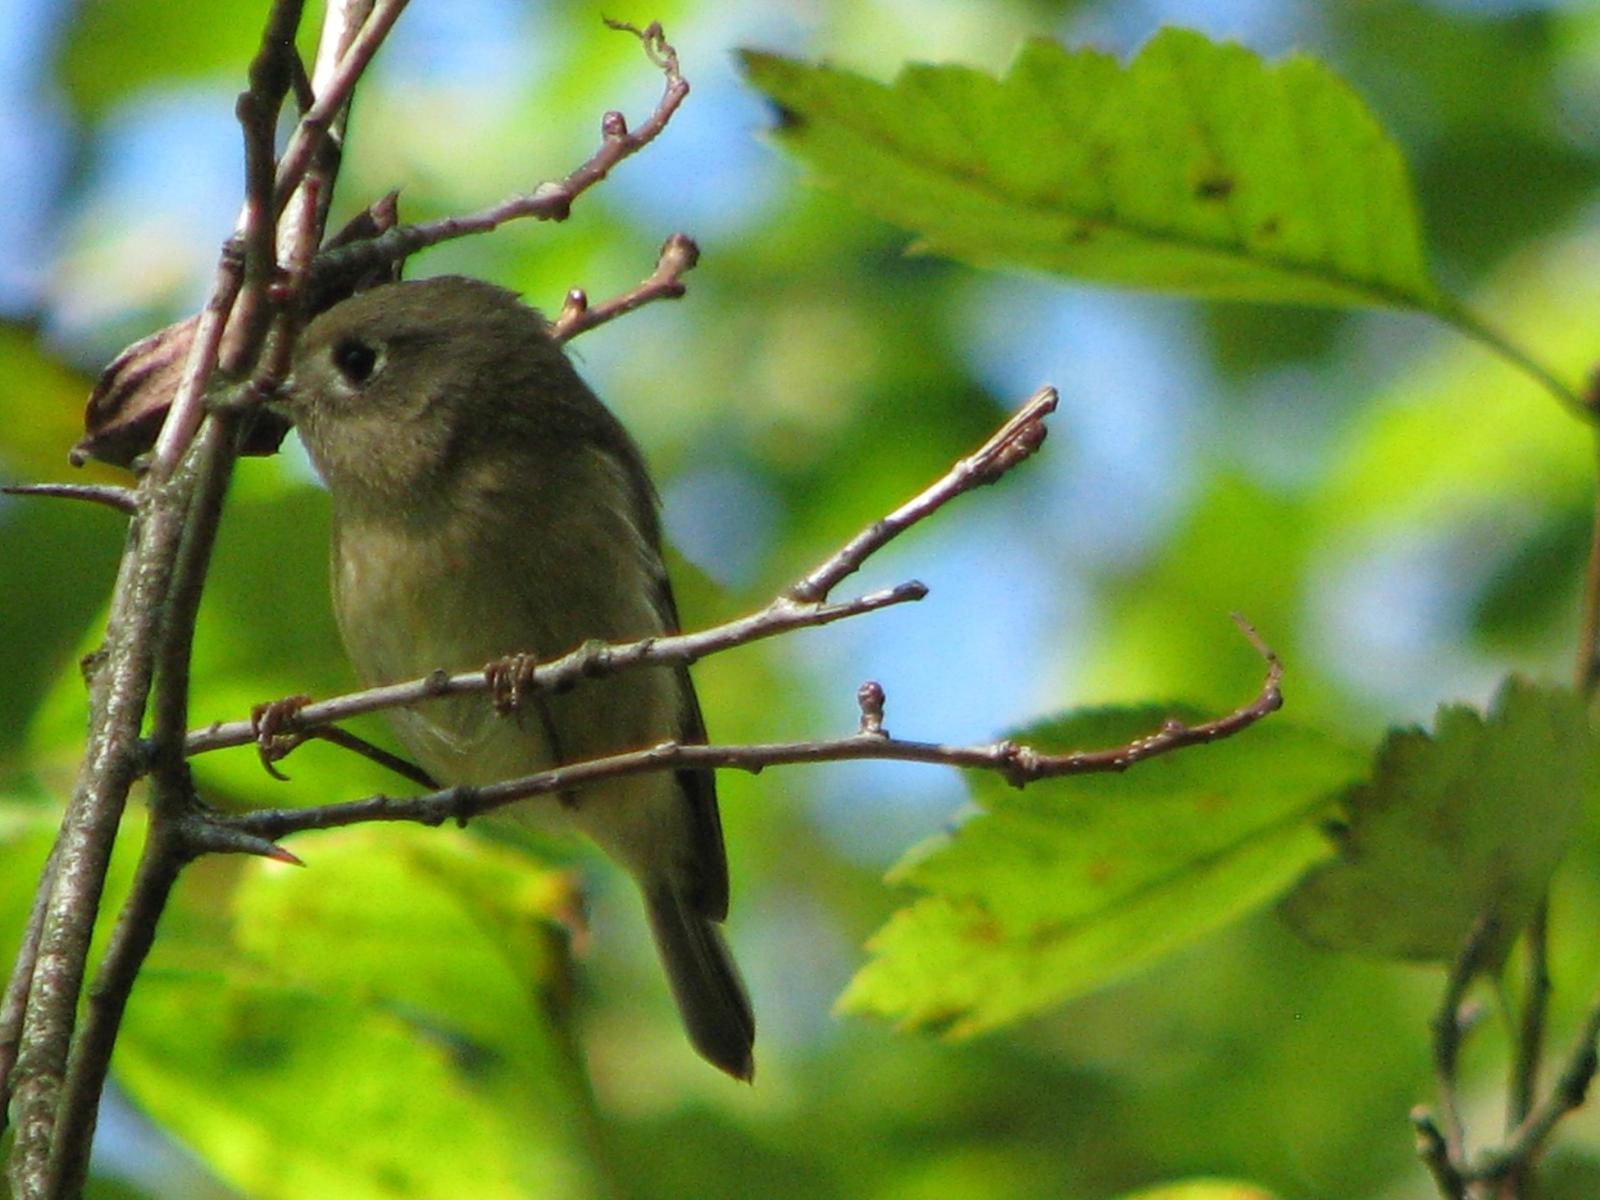 Ruby-crowned Kinglet Photo by Ted Goshulak